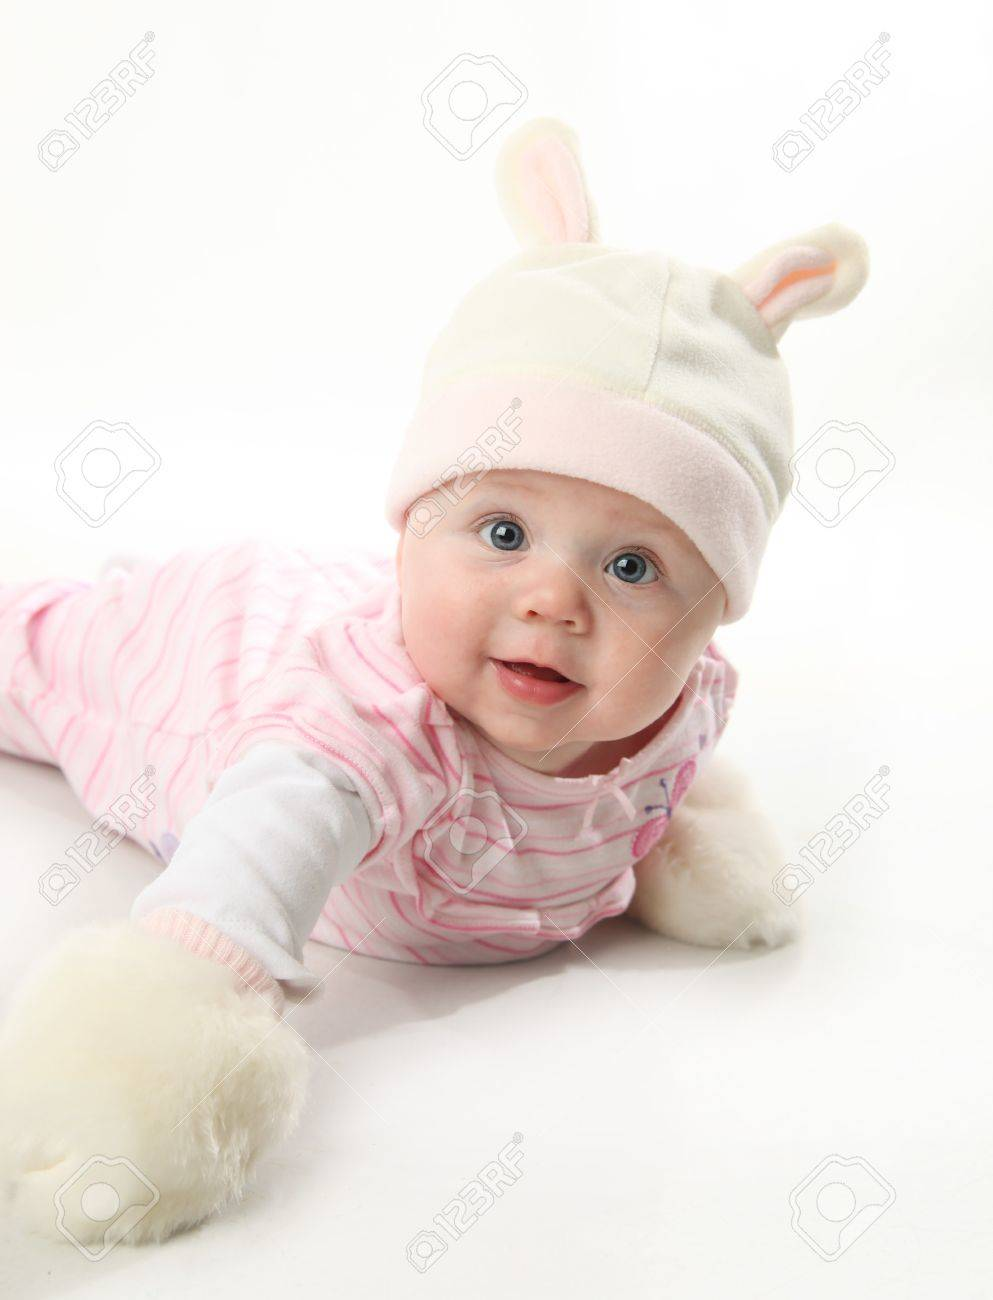 Portrait of an adorable baby girl wearing a bunny rabbit costume and furry mittens Stock Photo  sc 1 st  123RF.com & Portrait Of An Adorable Baby Girl Wearing A Bunny Rabbit Costume ...